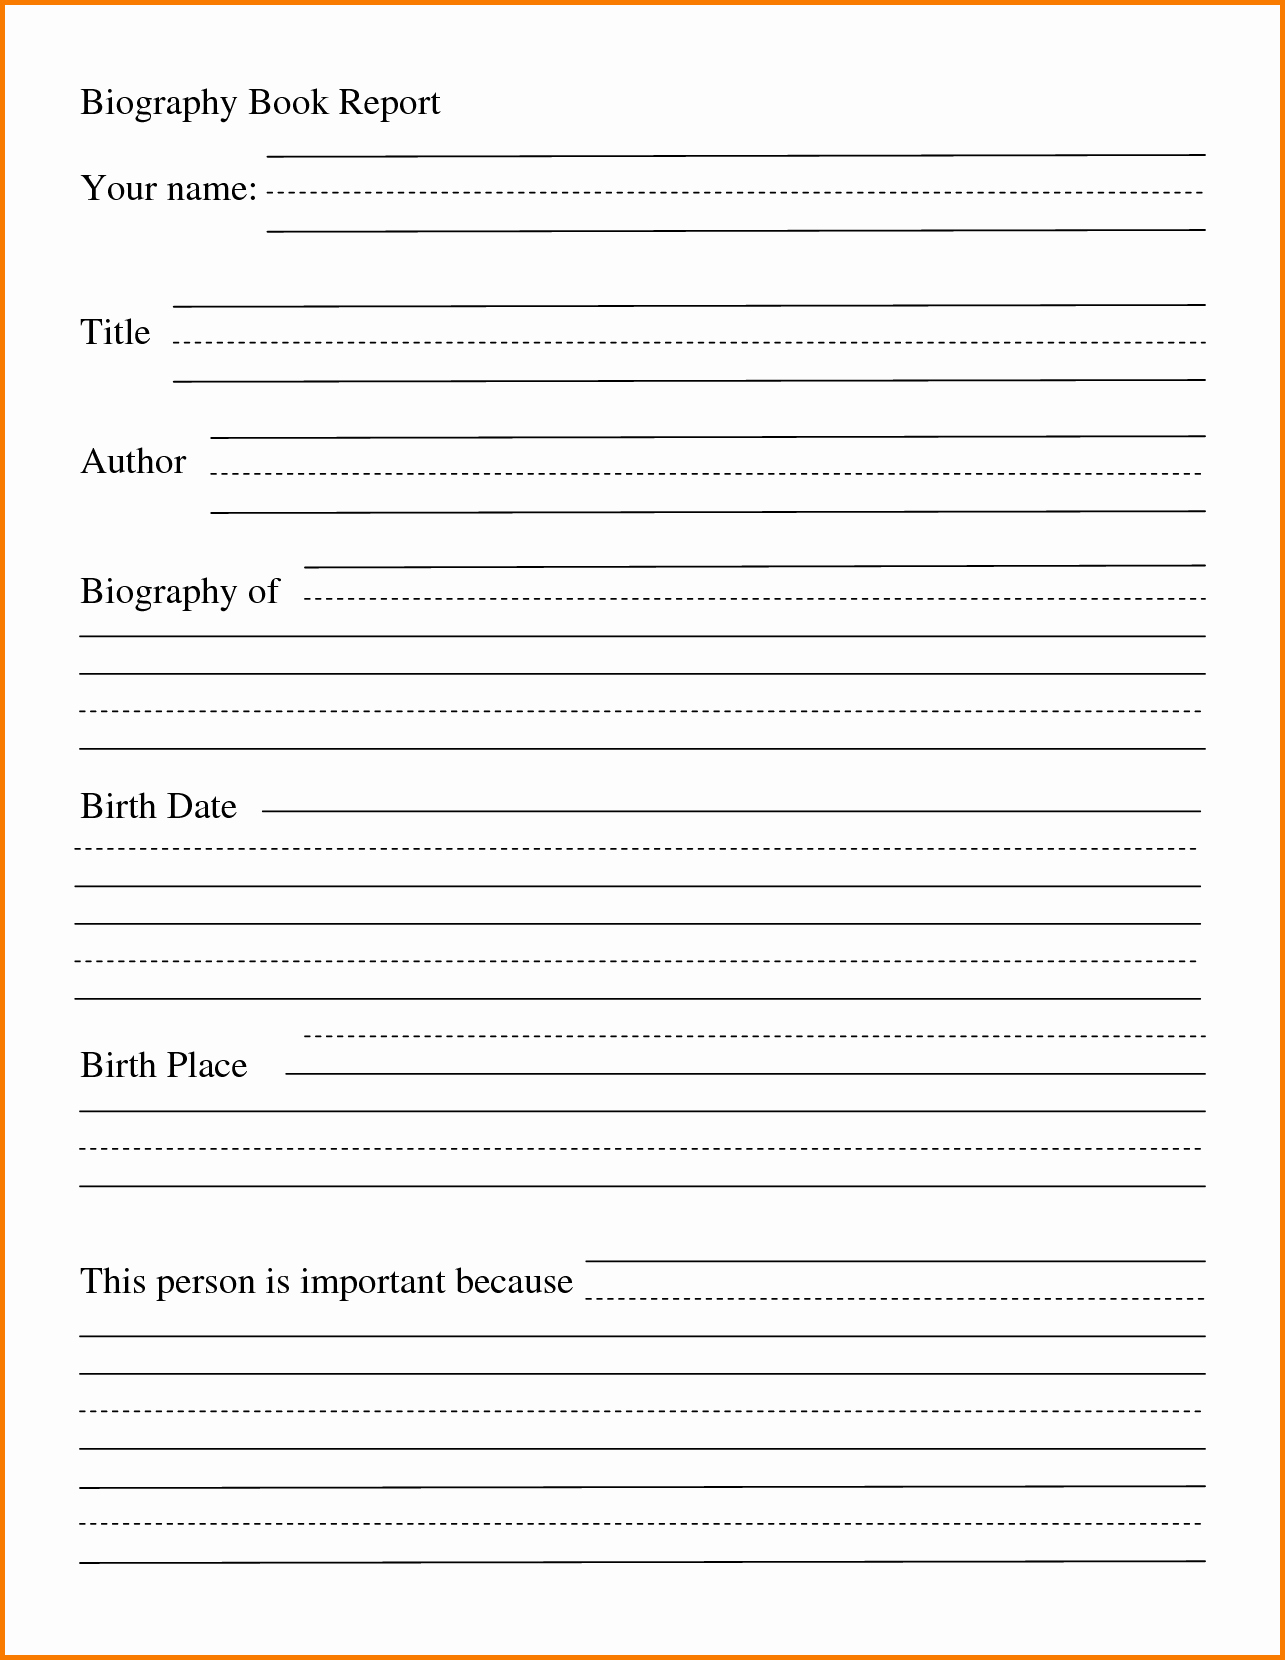 Biography Book Report Template Awesome Free Printable Biography Book Report form